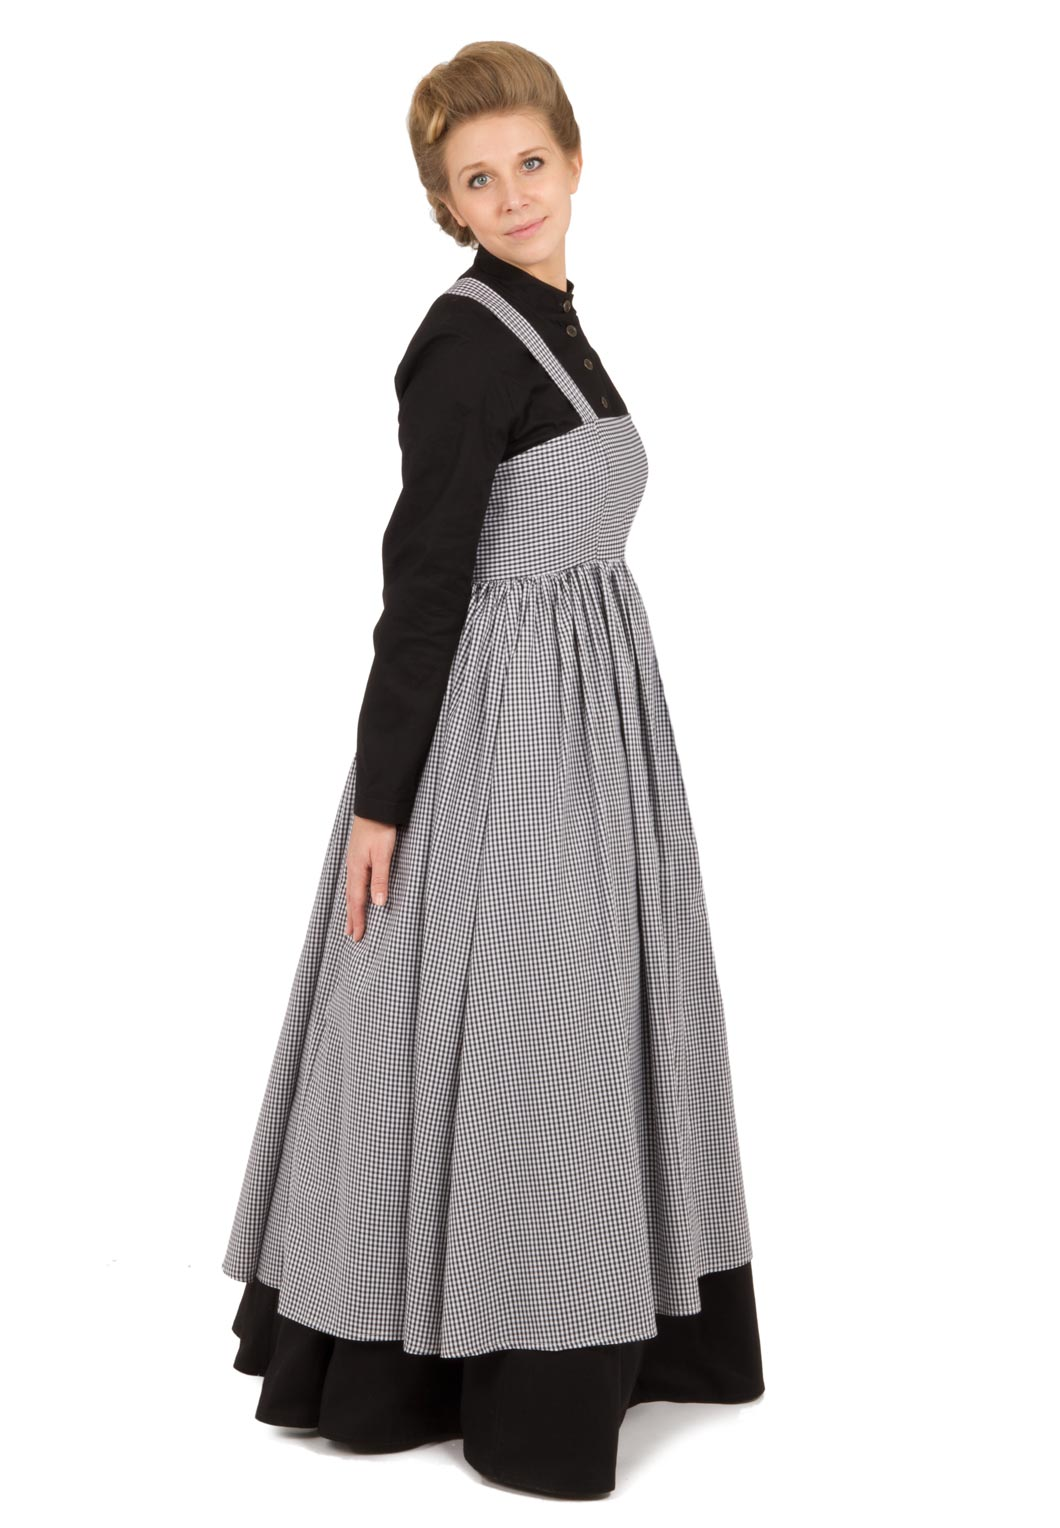 Simple Victorian Old Lady Dresses